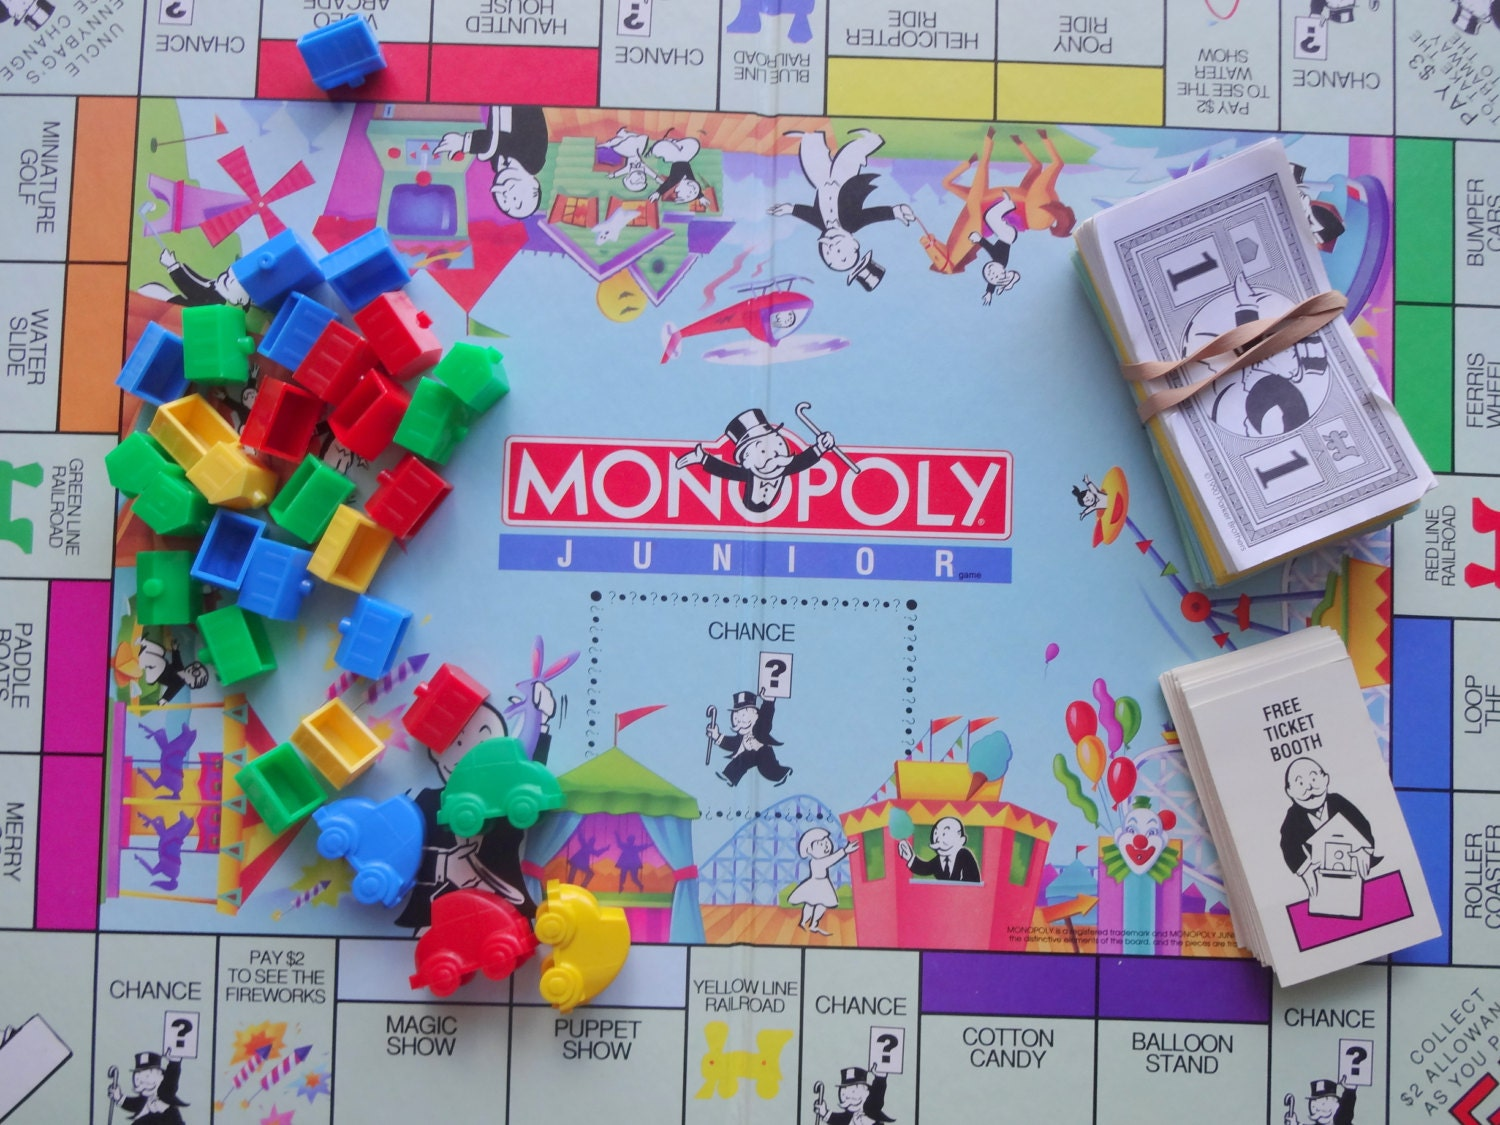 monopoly junior game directions